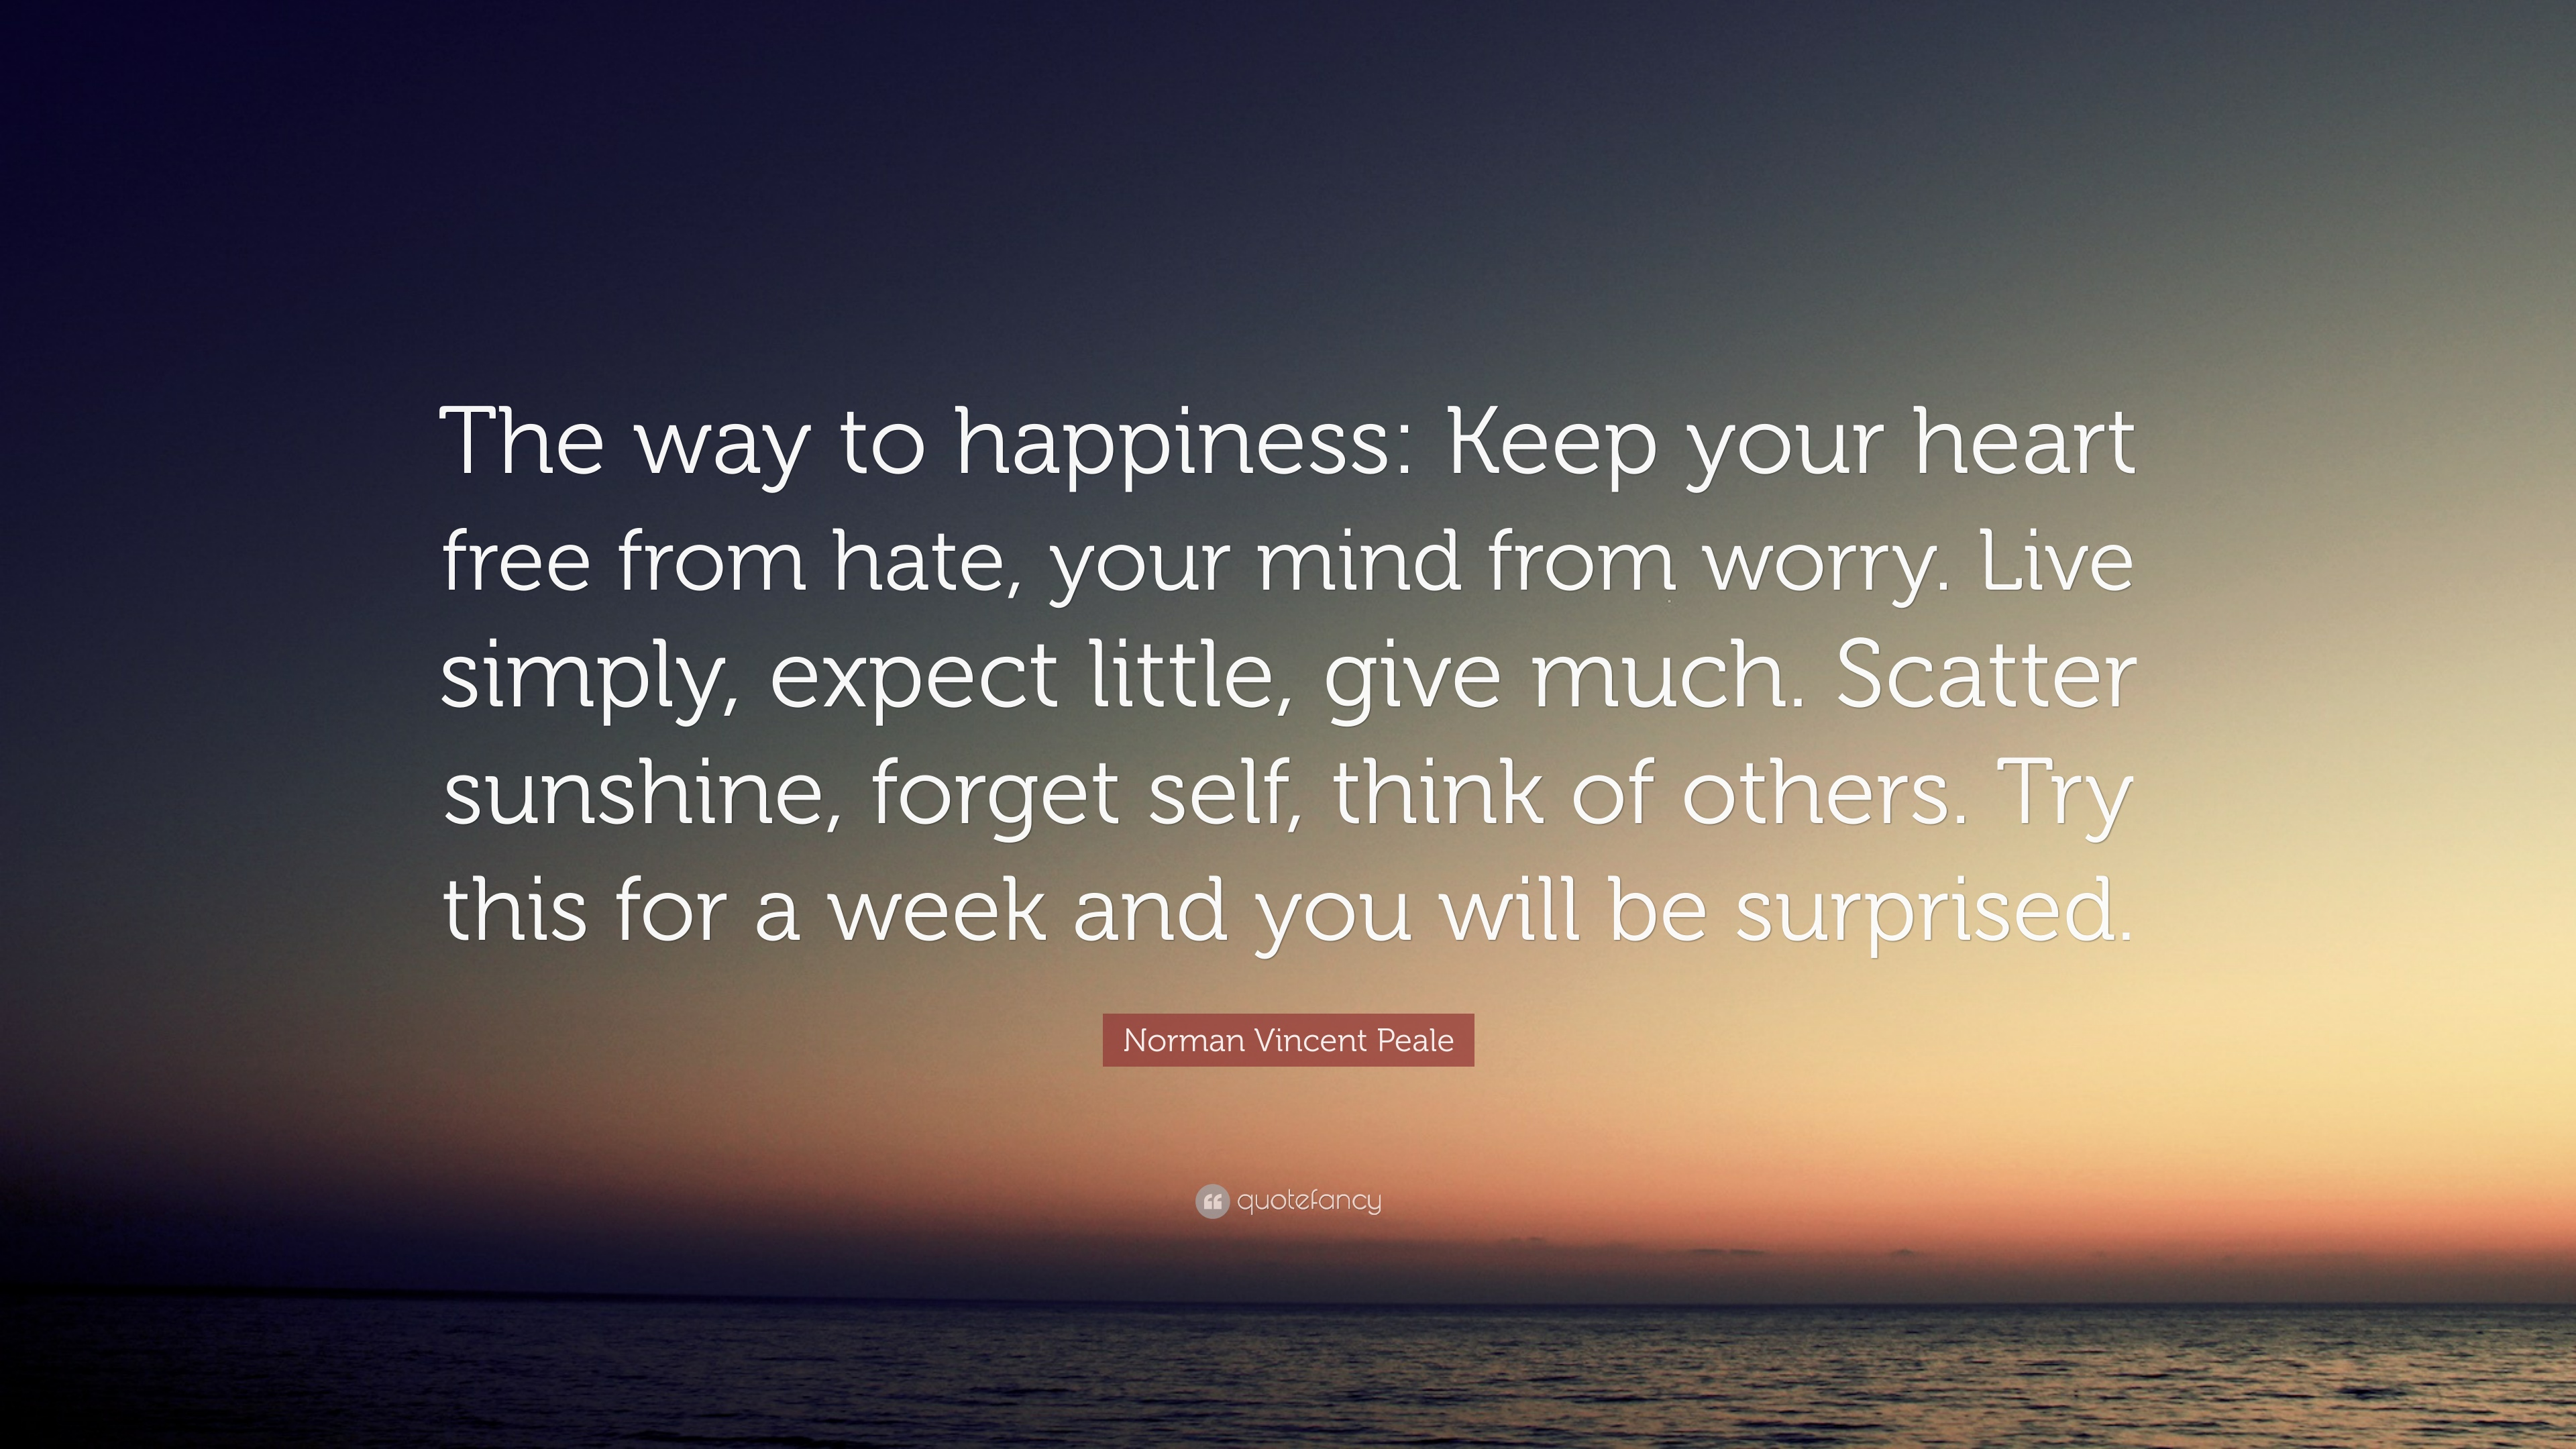 Norman Vincent Peale Quote The Way To Happiness Keep Your Heart